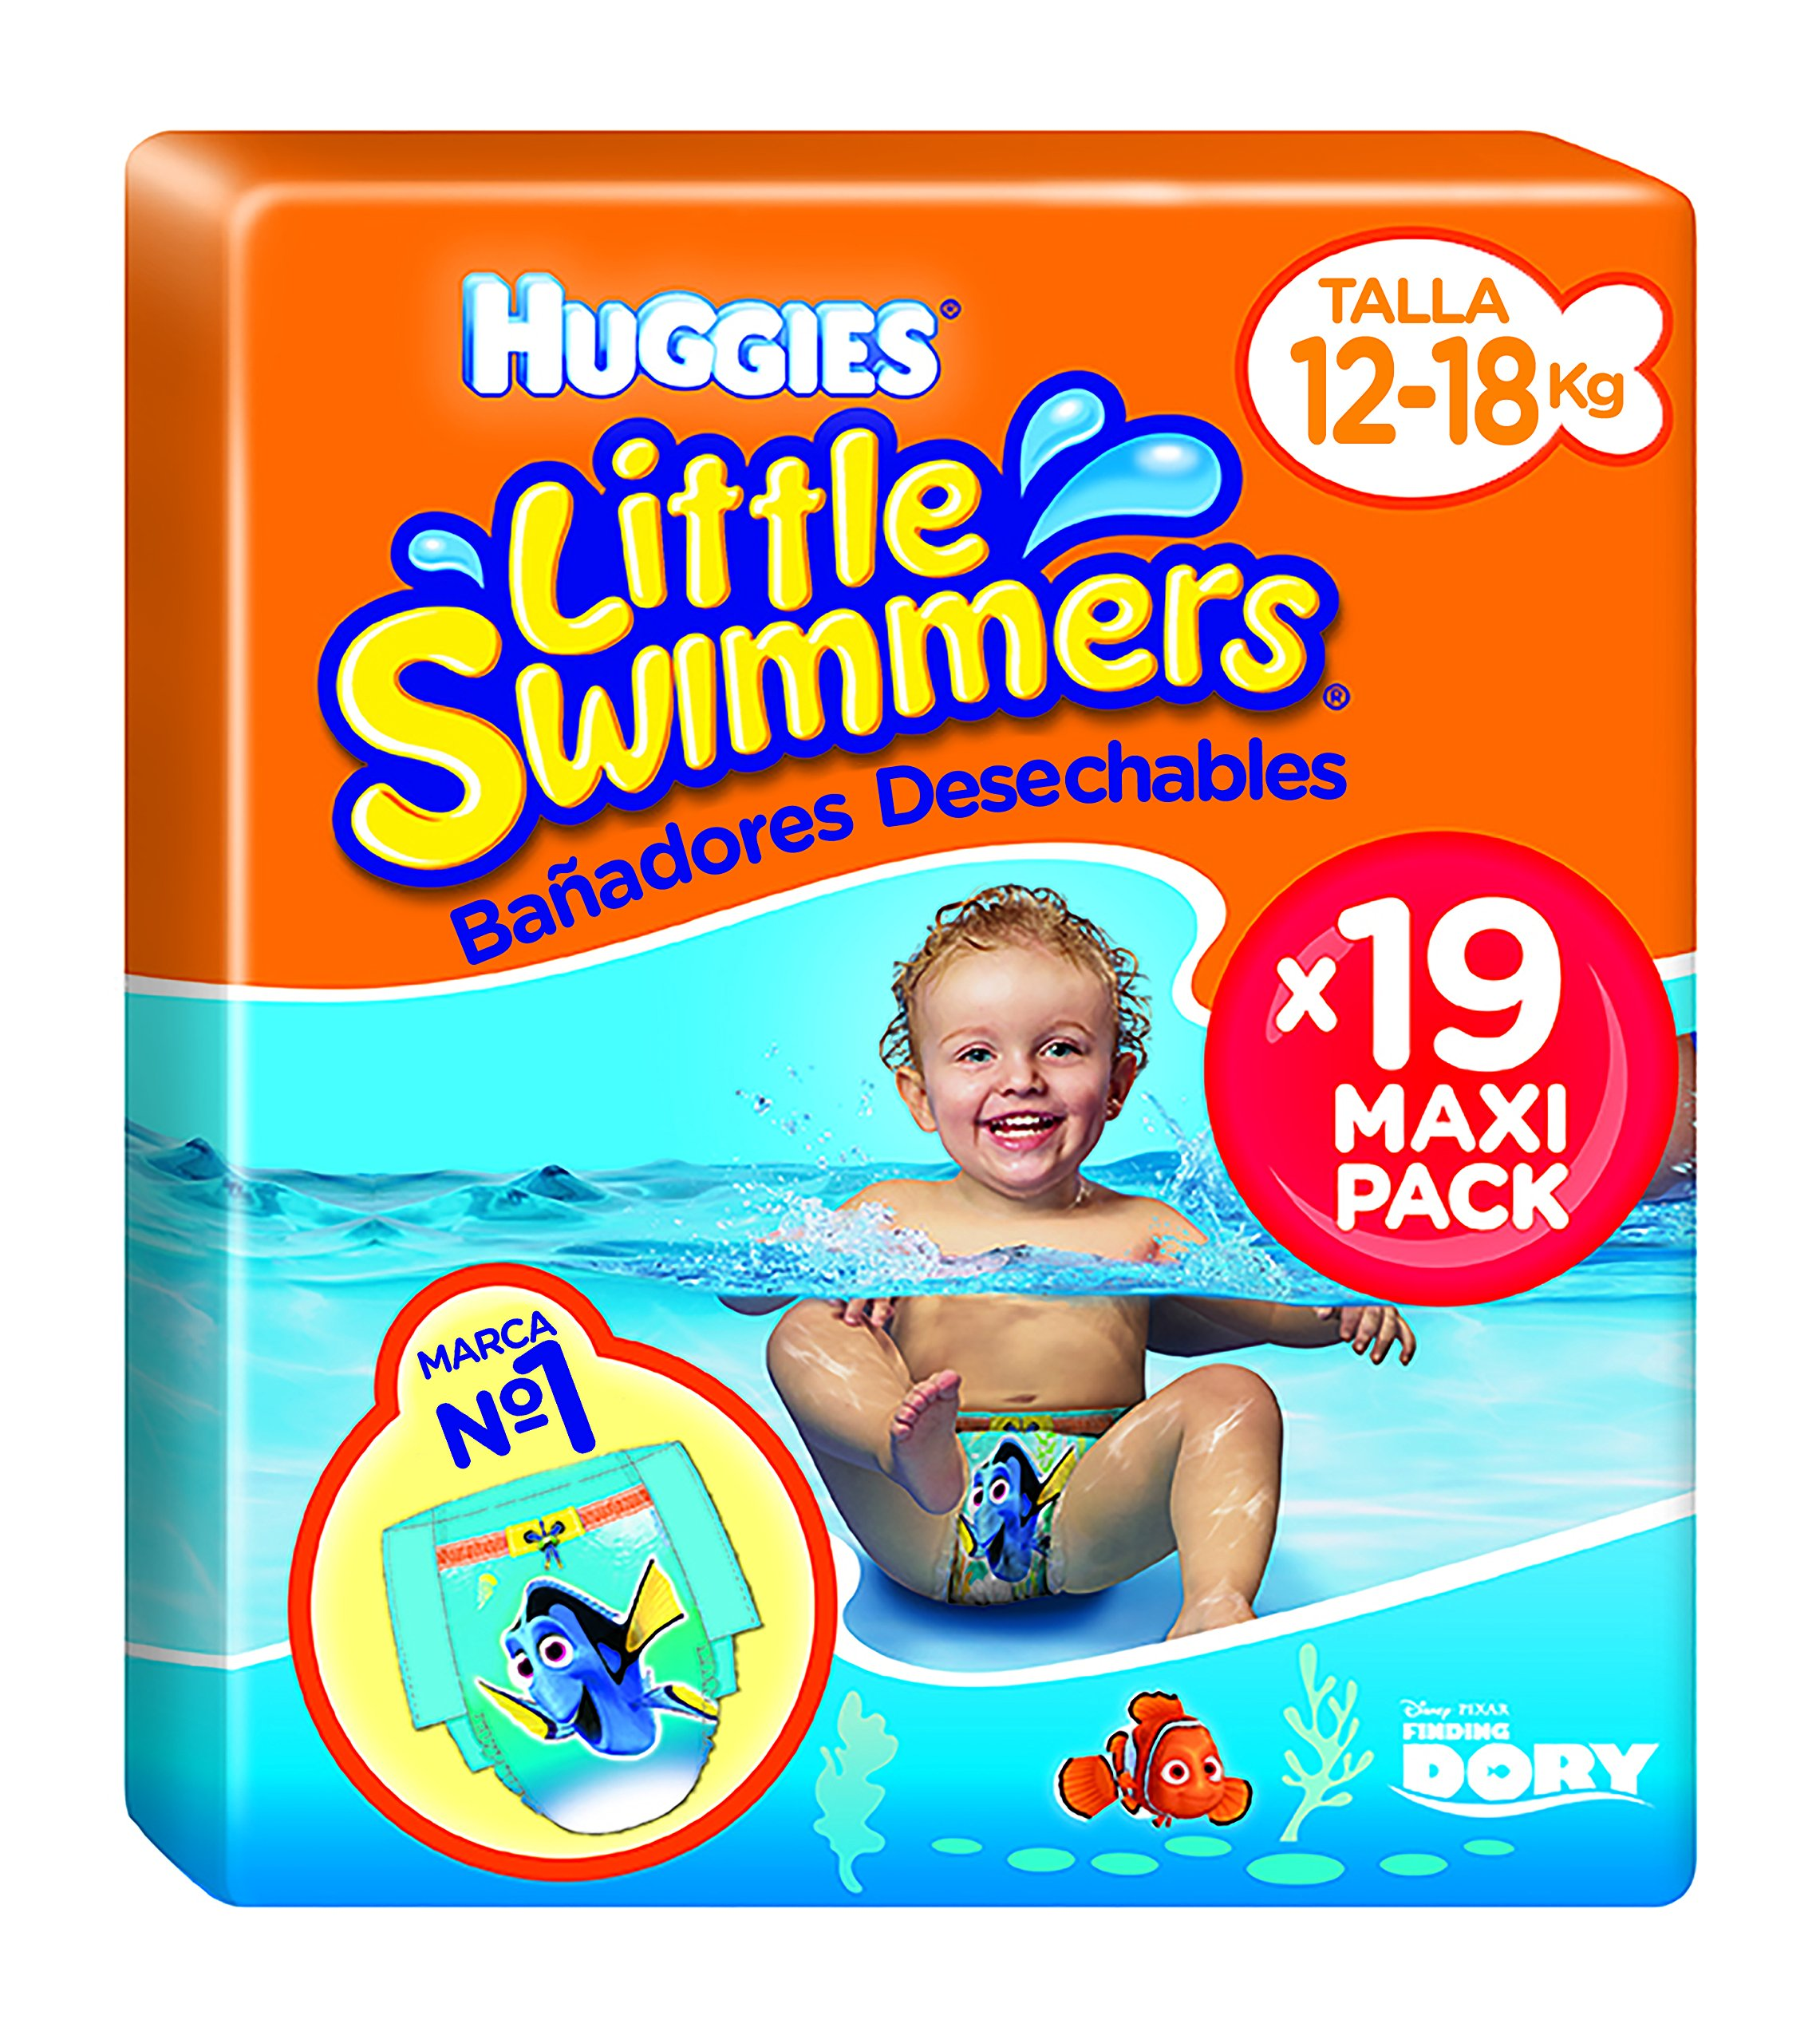 Huggies Little Swimmers - Bañadores Desechables, talla 5-6, 19 unidades product image